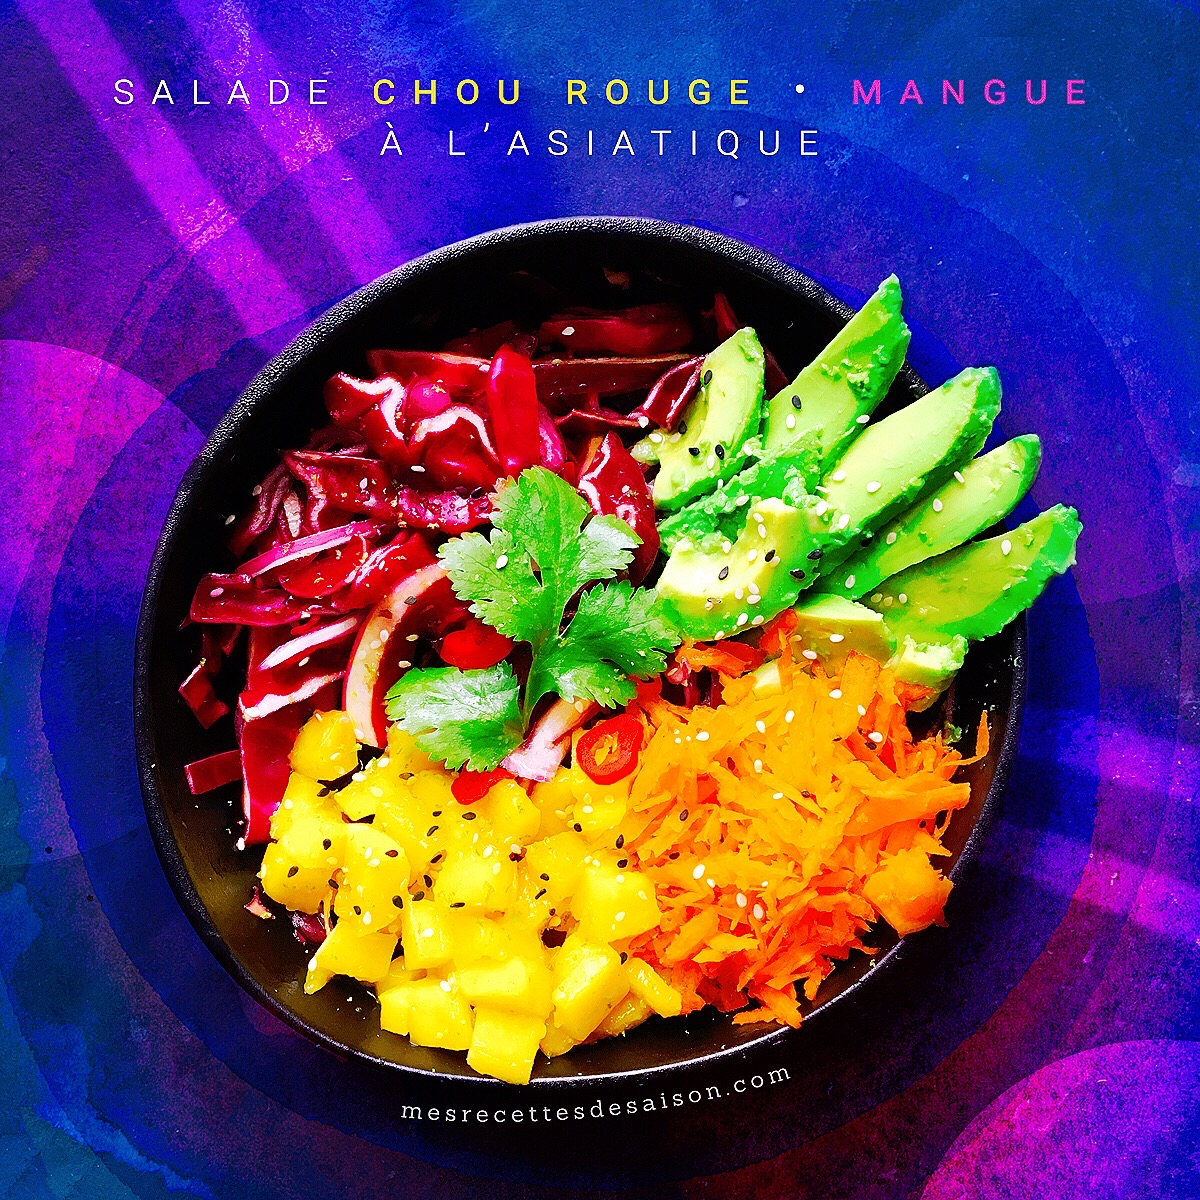 Salade chou rouge • mangue à l'asiatique